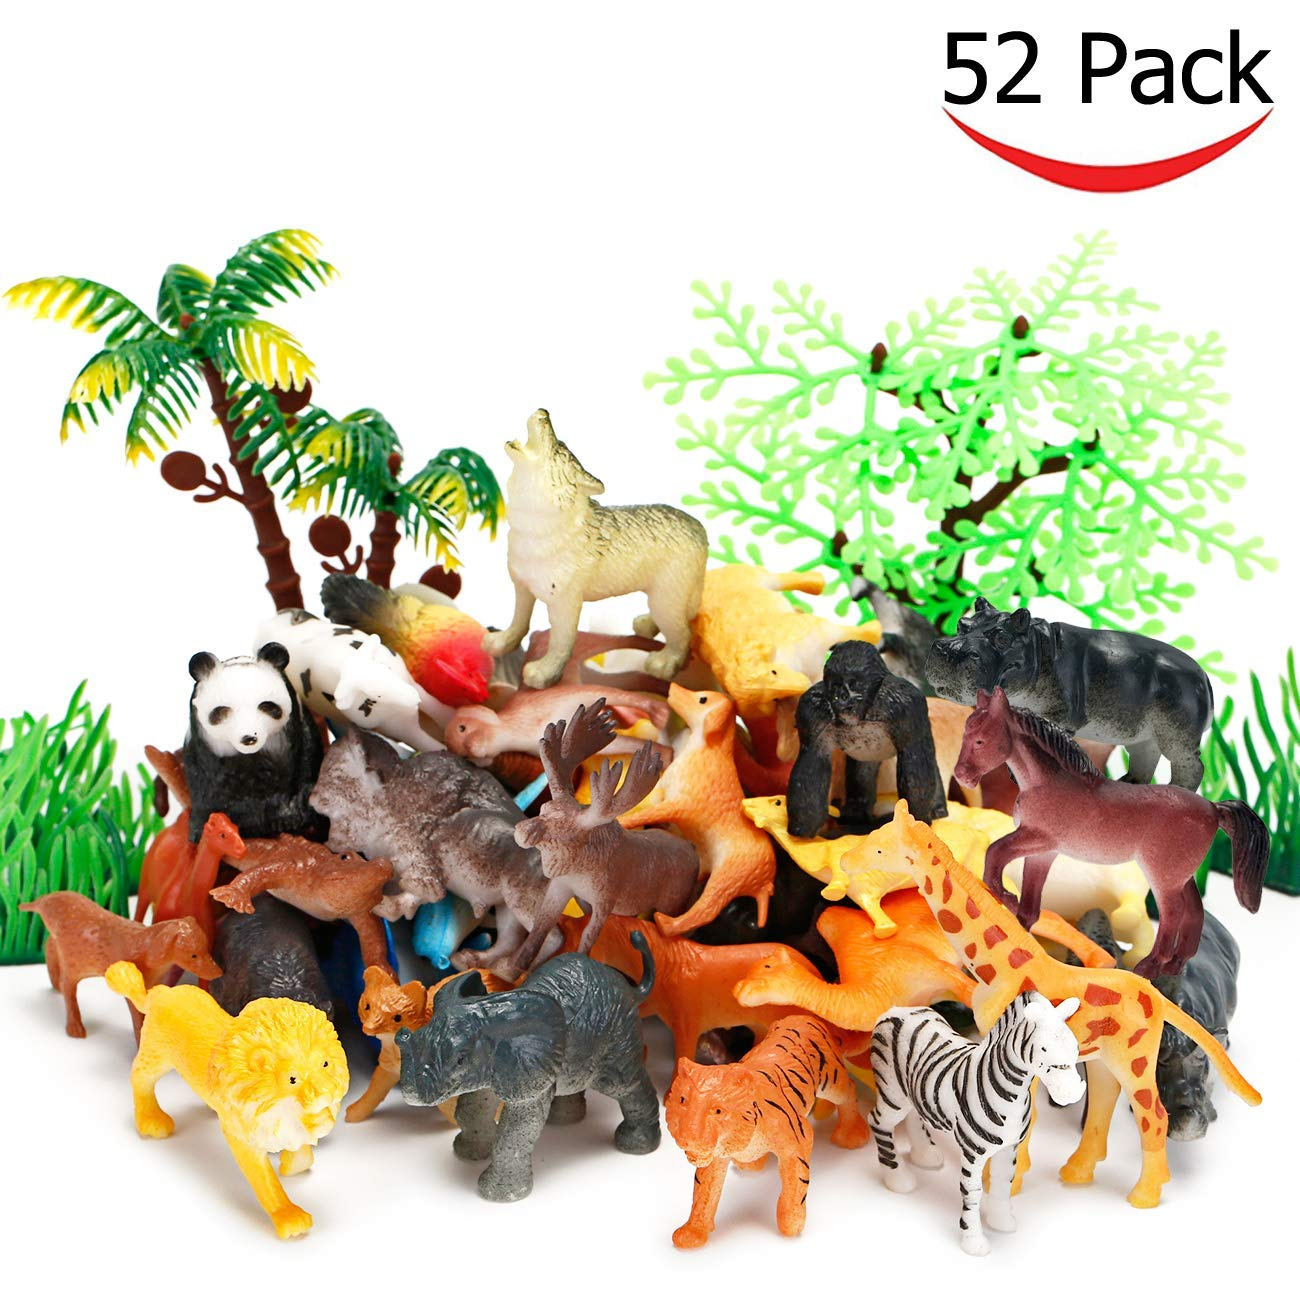 Plastic Zoo Animals Toys Toys Buy Online From Fishpond Com